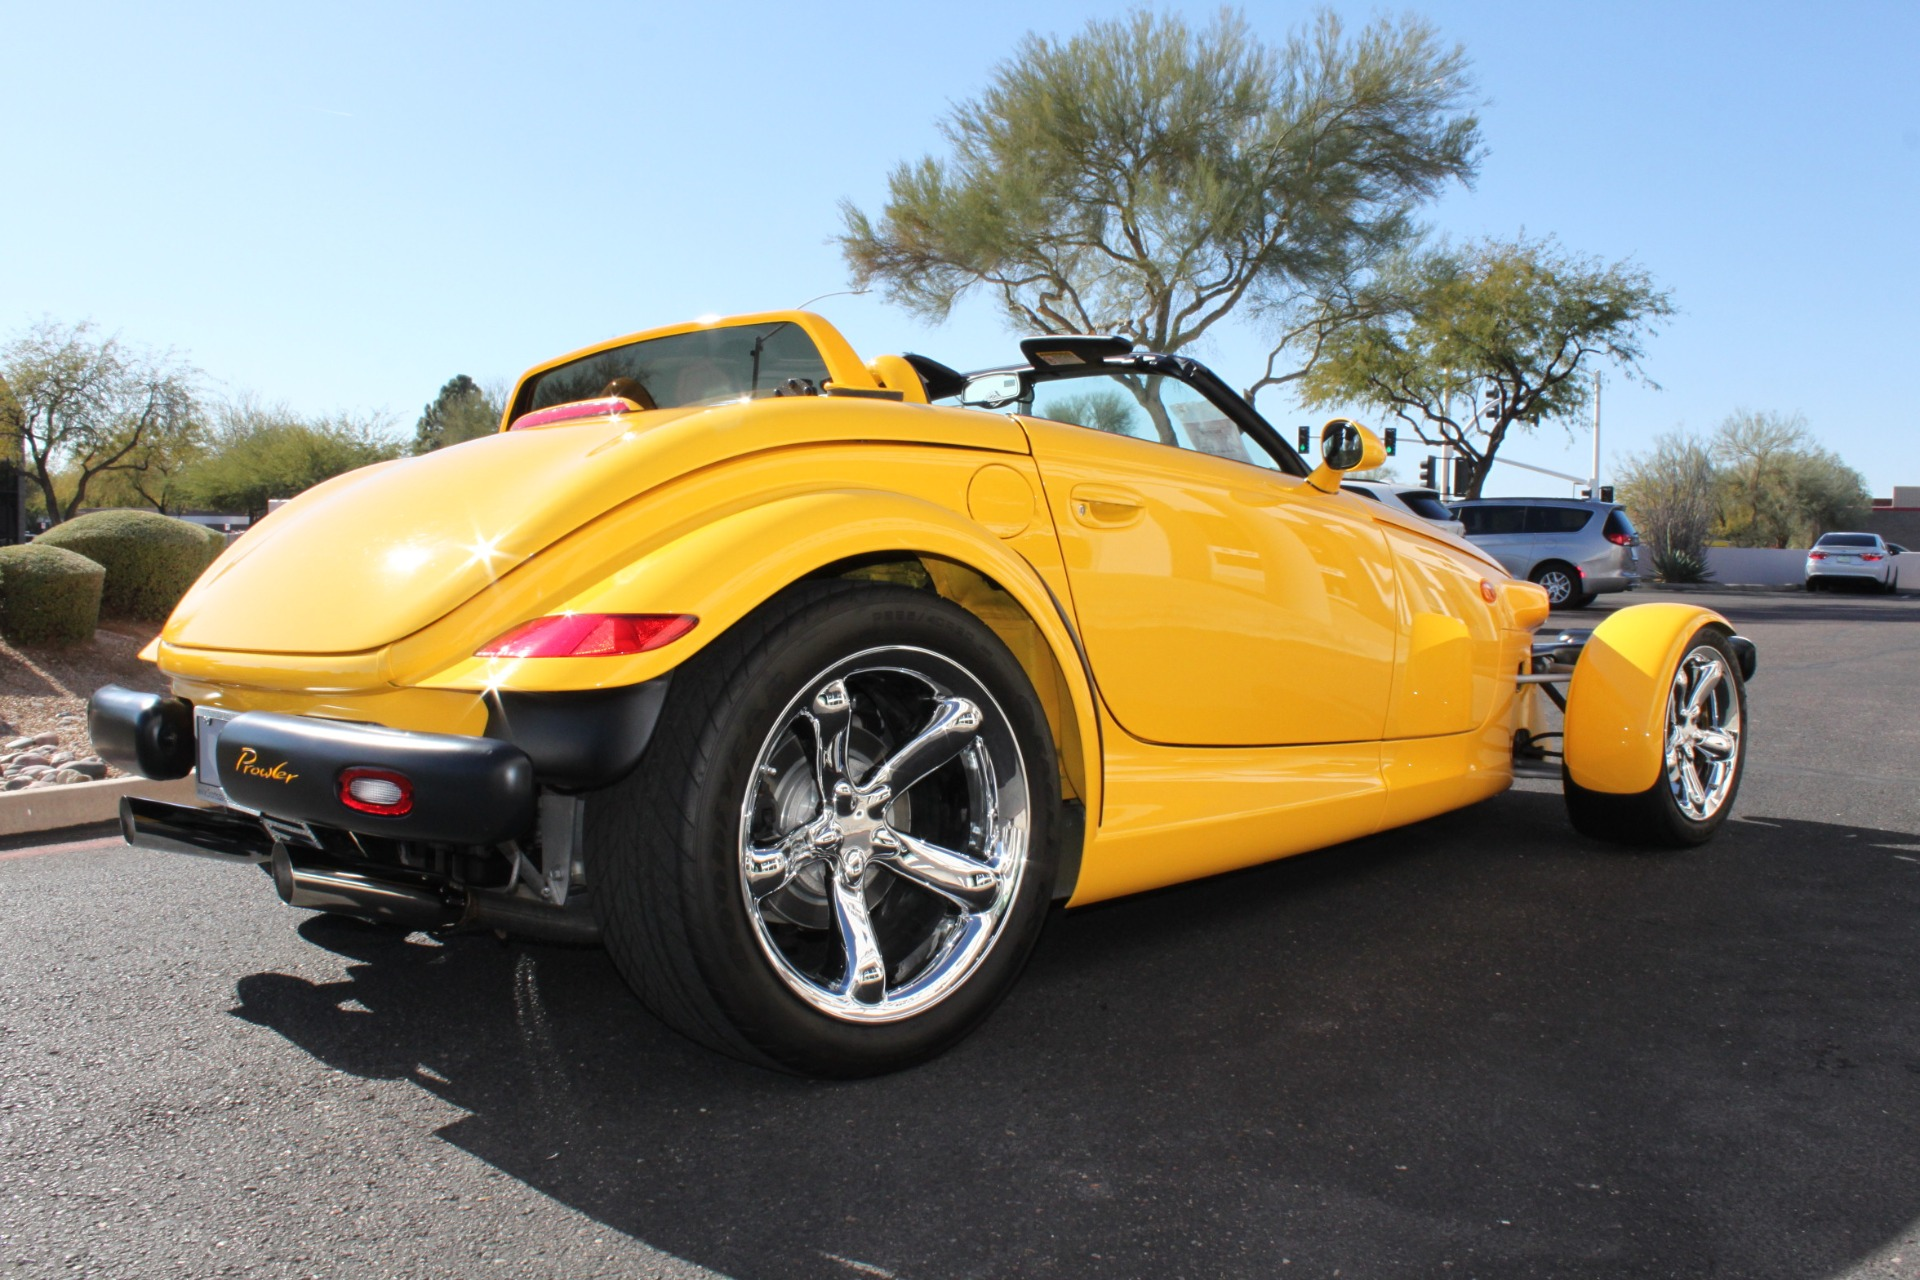 Used-2002-Chrysler-Prowler-Classic